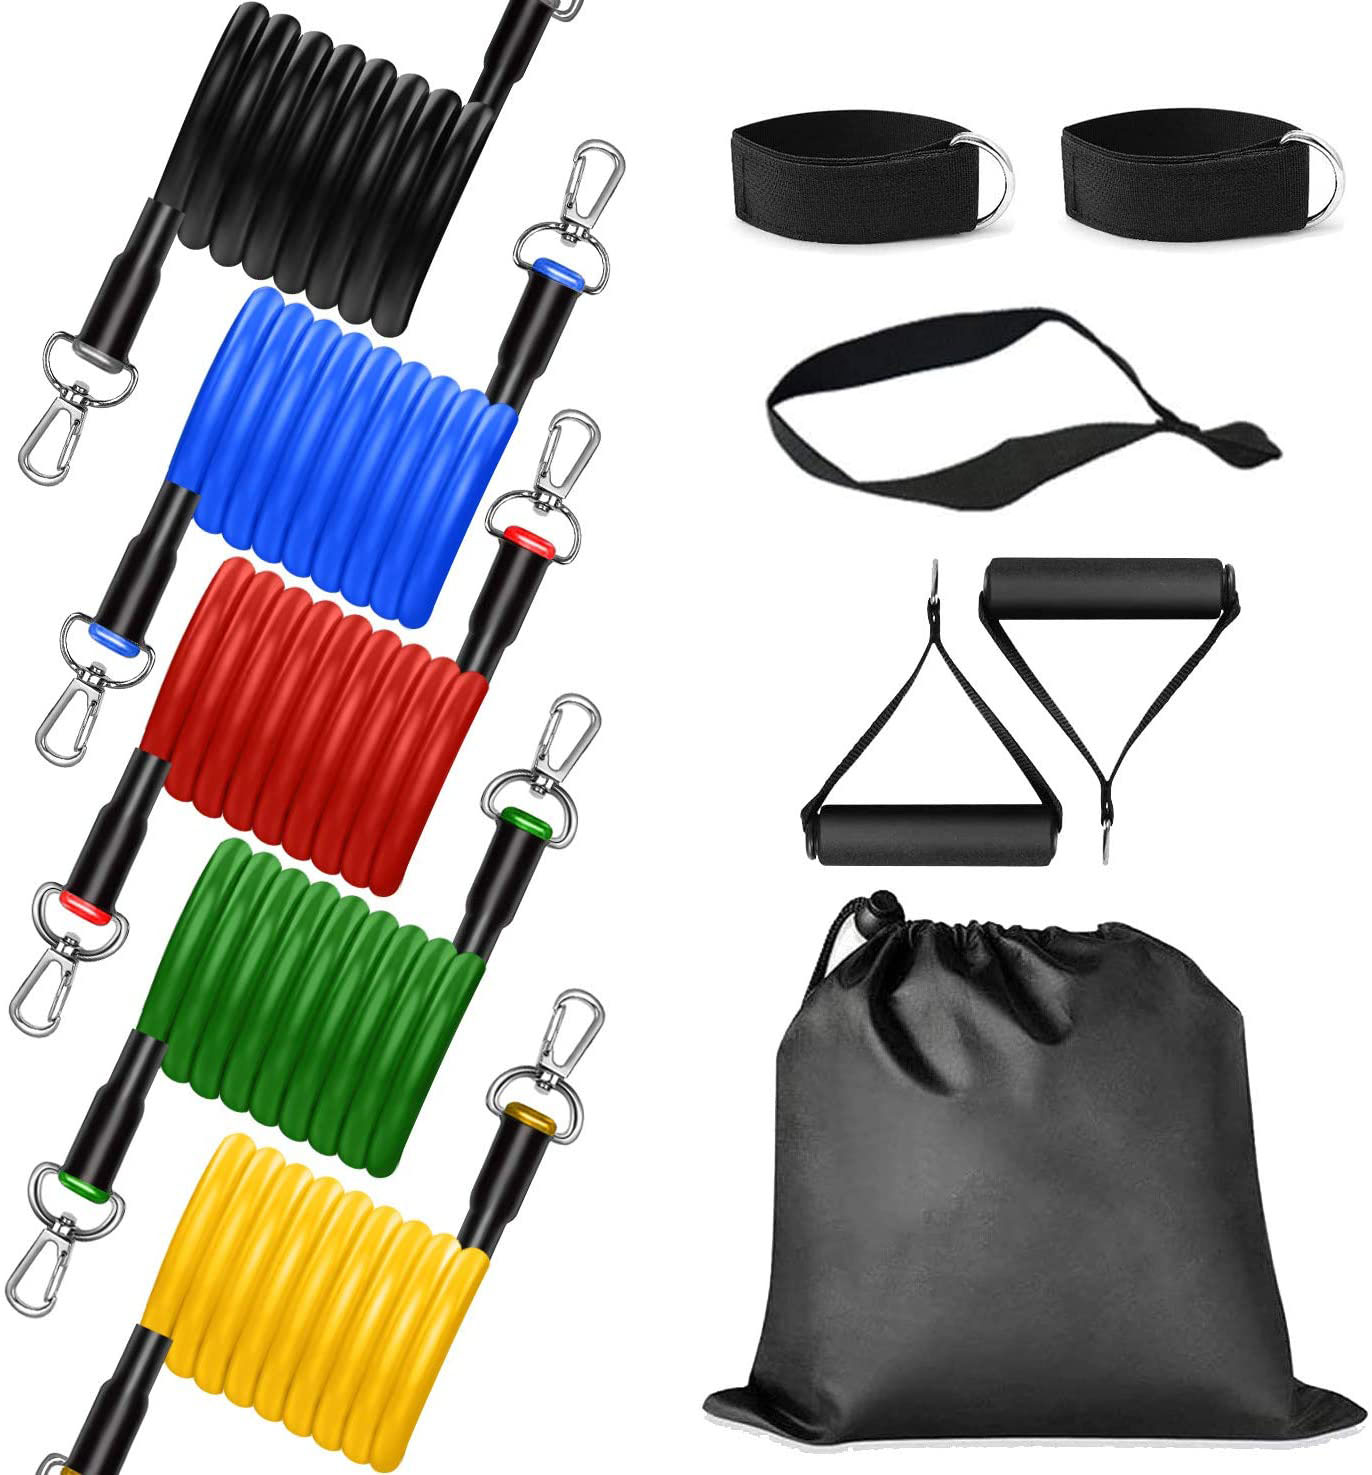 Resistance Bands Gym Training Physical Therapy Yoga and More 5 Stackable Exercise Bands with 1 Door Anchor,2 Foam Handle,2 Metal Foot Ring/&Carrying Case for Home Workouts